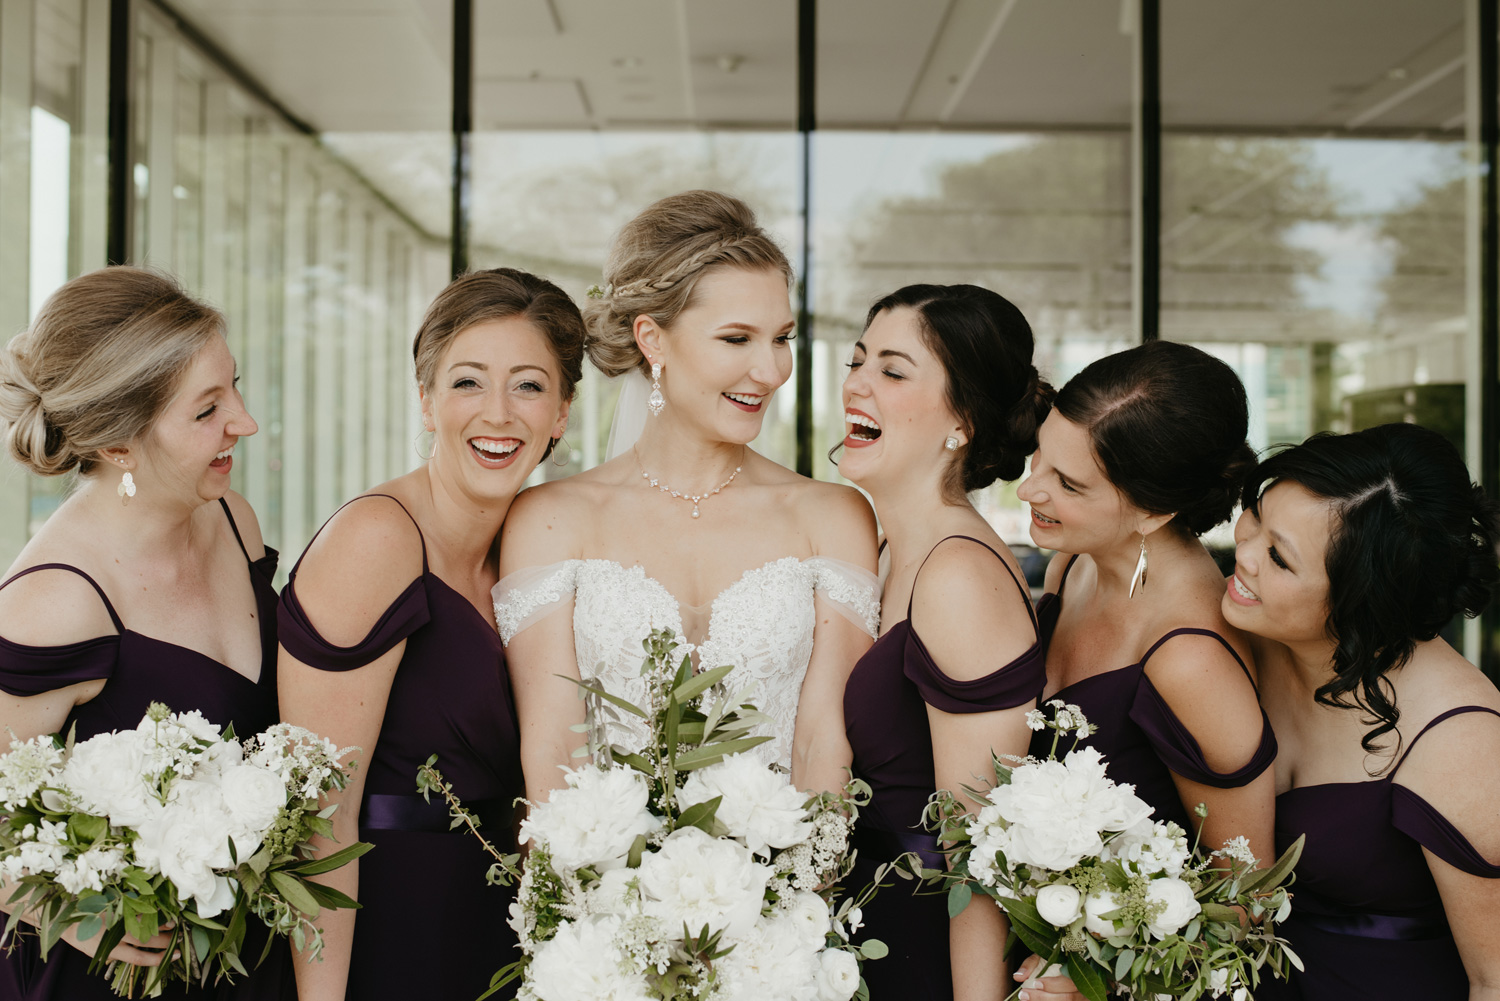 Bridal party and bride laughing at one another